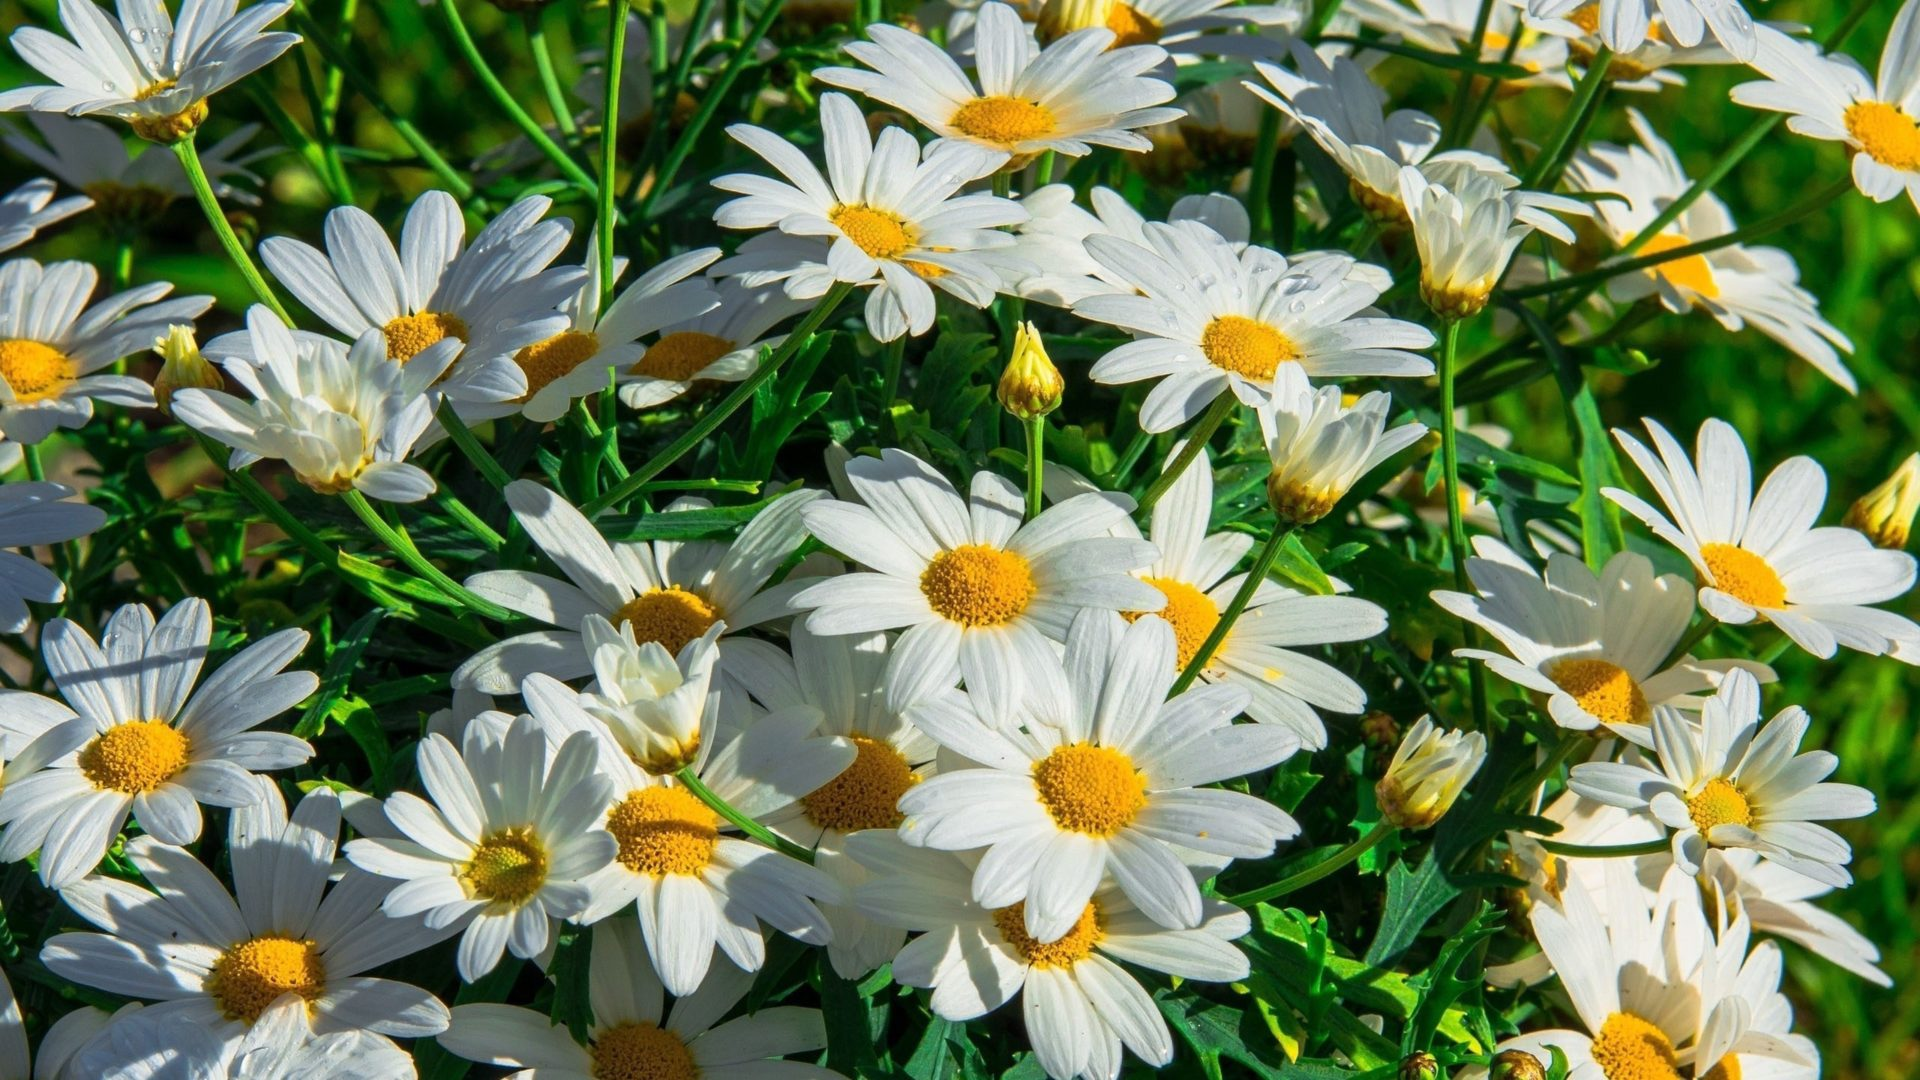 Fall Daisy Wallpaper Chamomile Flower Beautiful Daisies Flowers With White